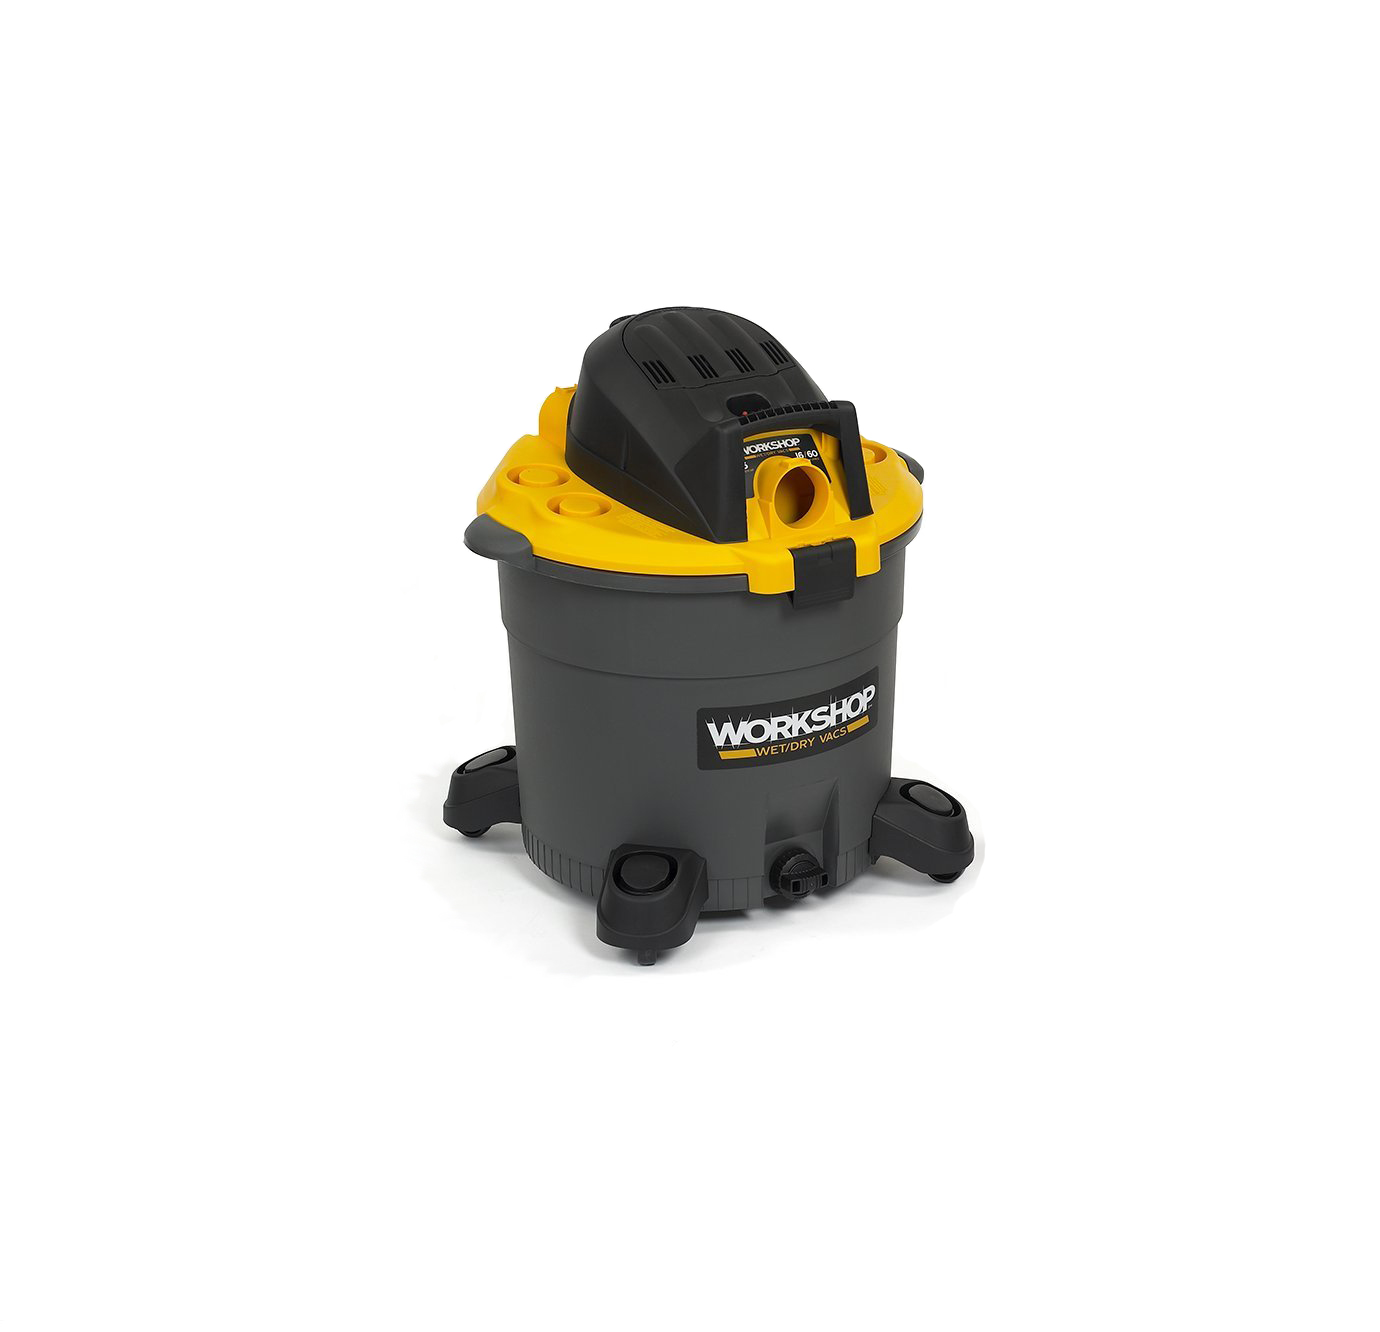 WORKSHOP WS1600VA Wet Dry Shop Vacuum Review